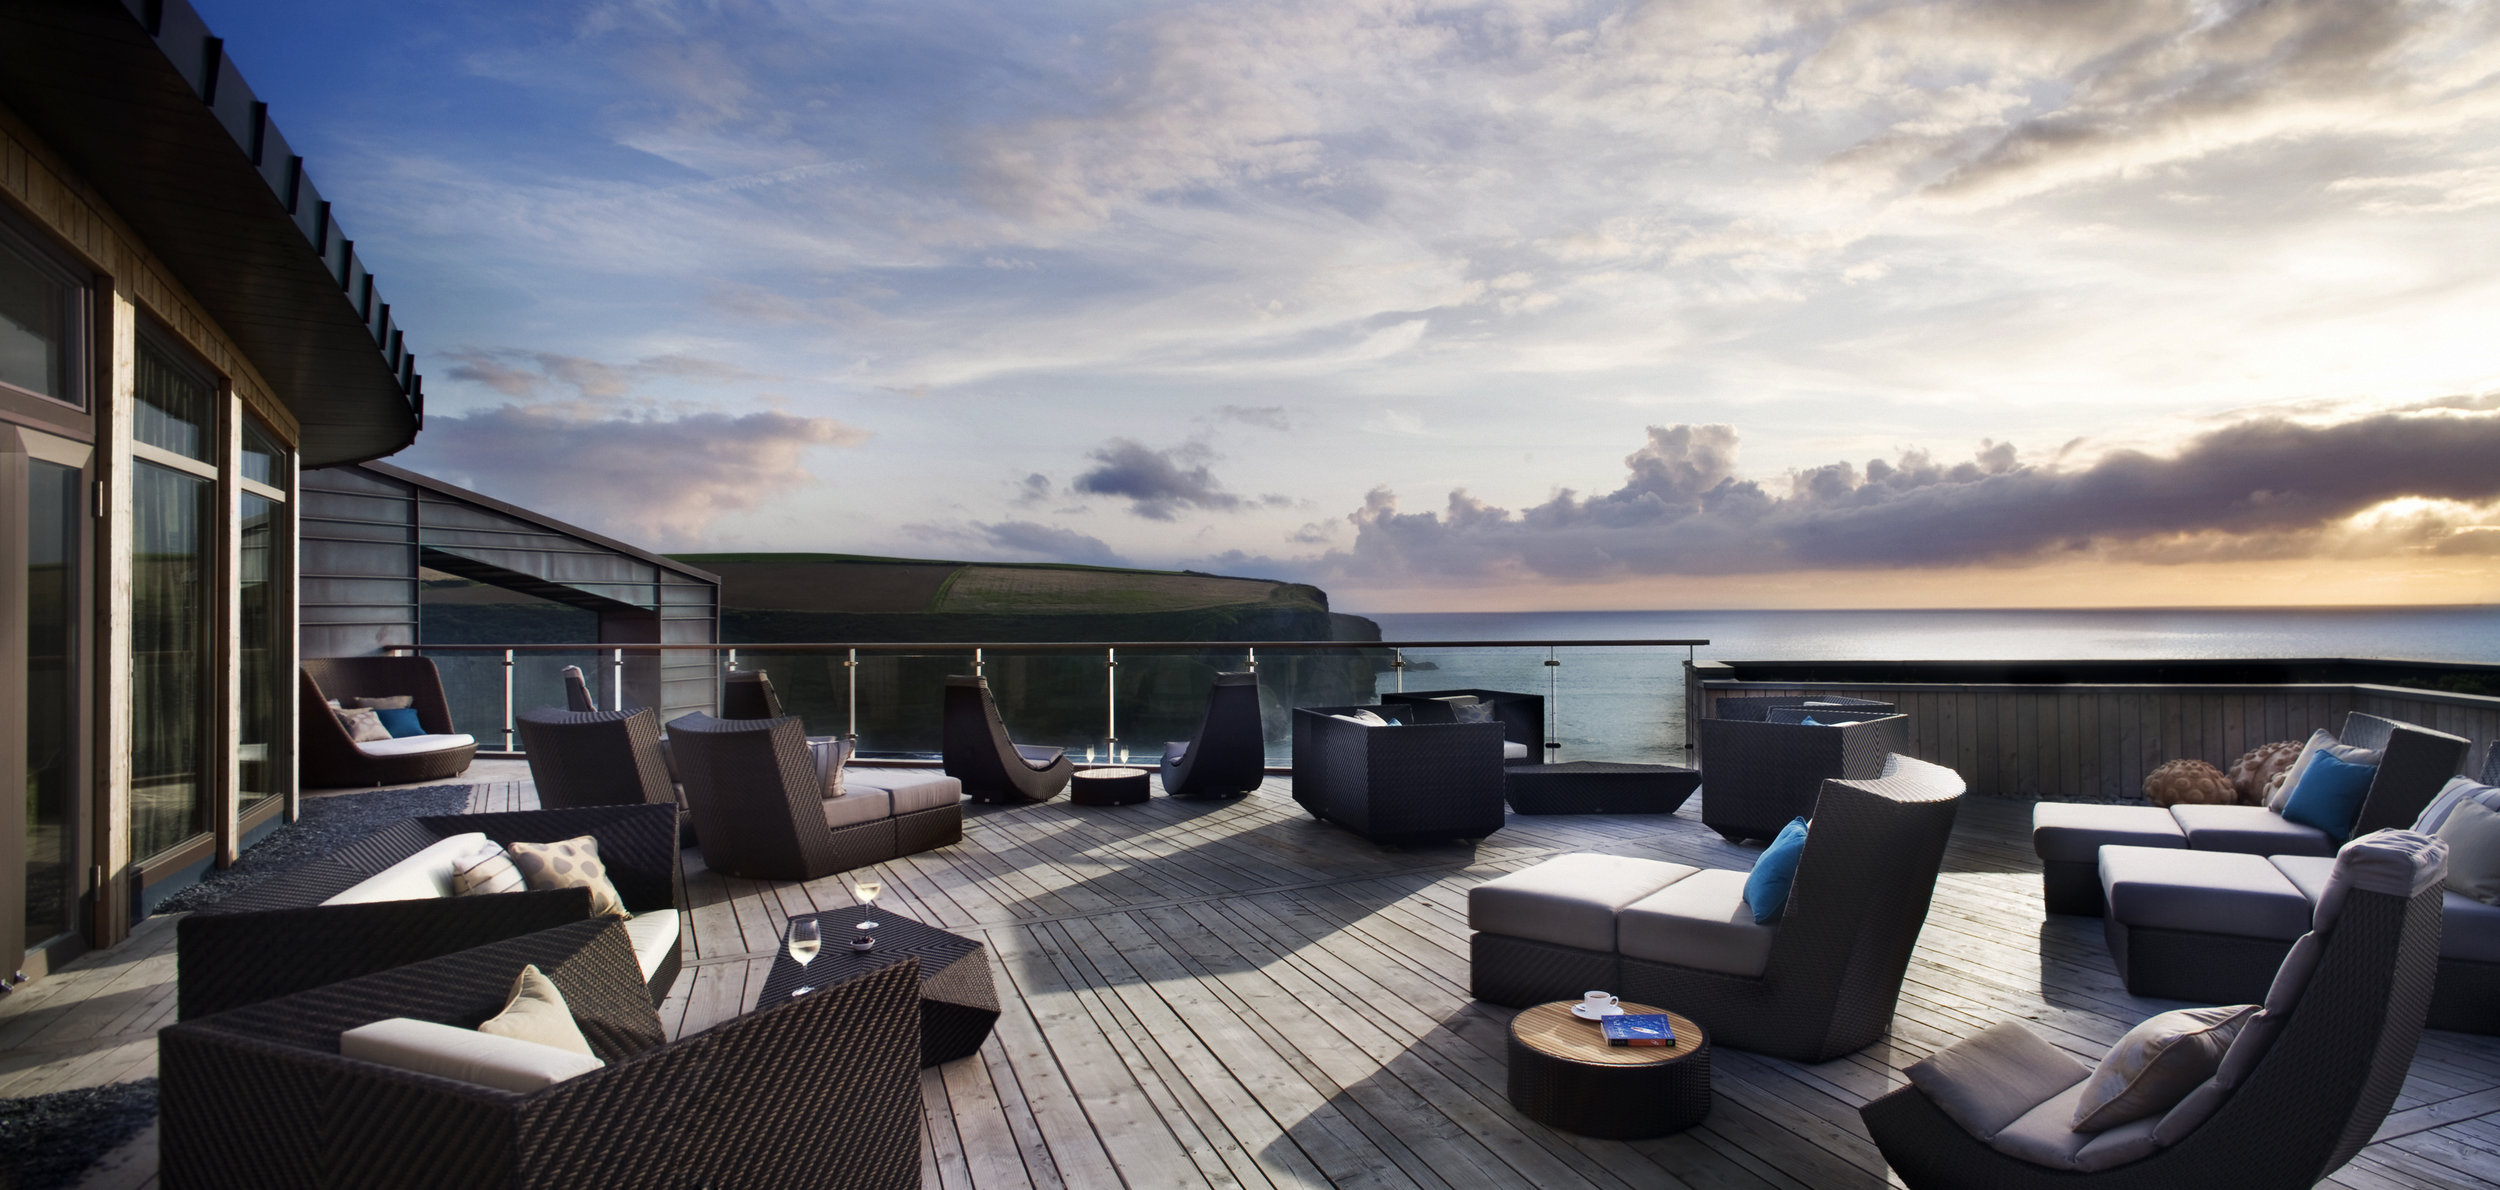 The Scarlet hotel and Spa - Cornwall